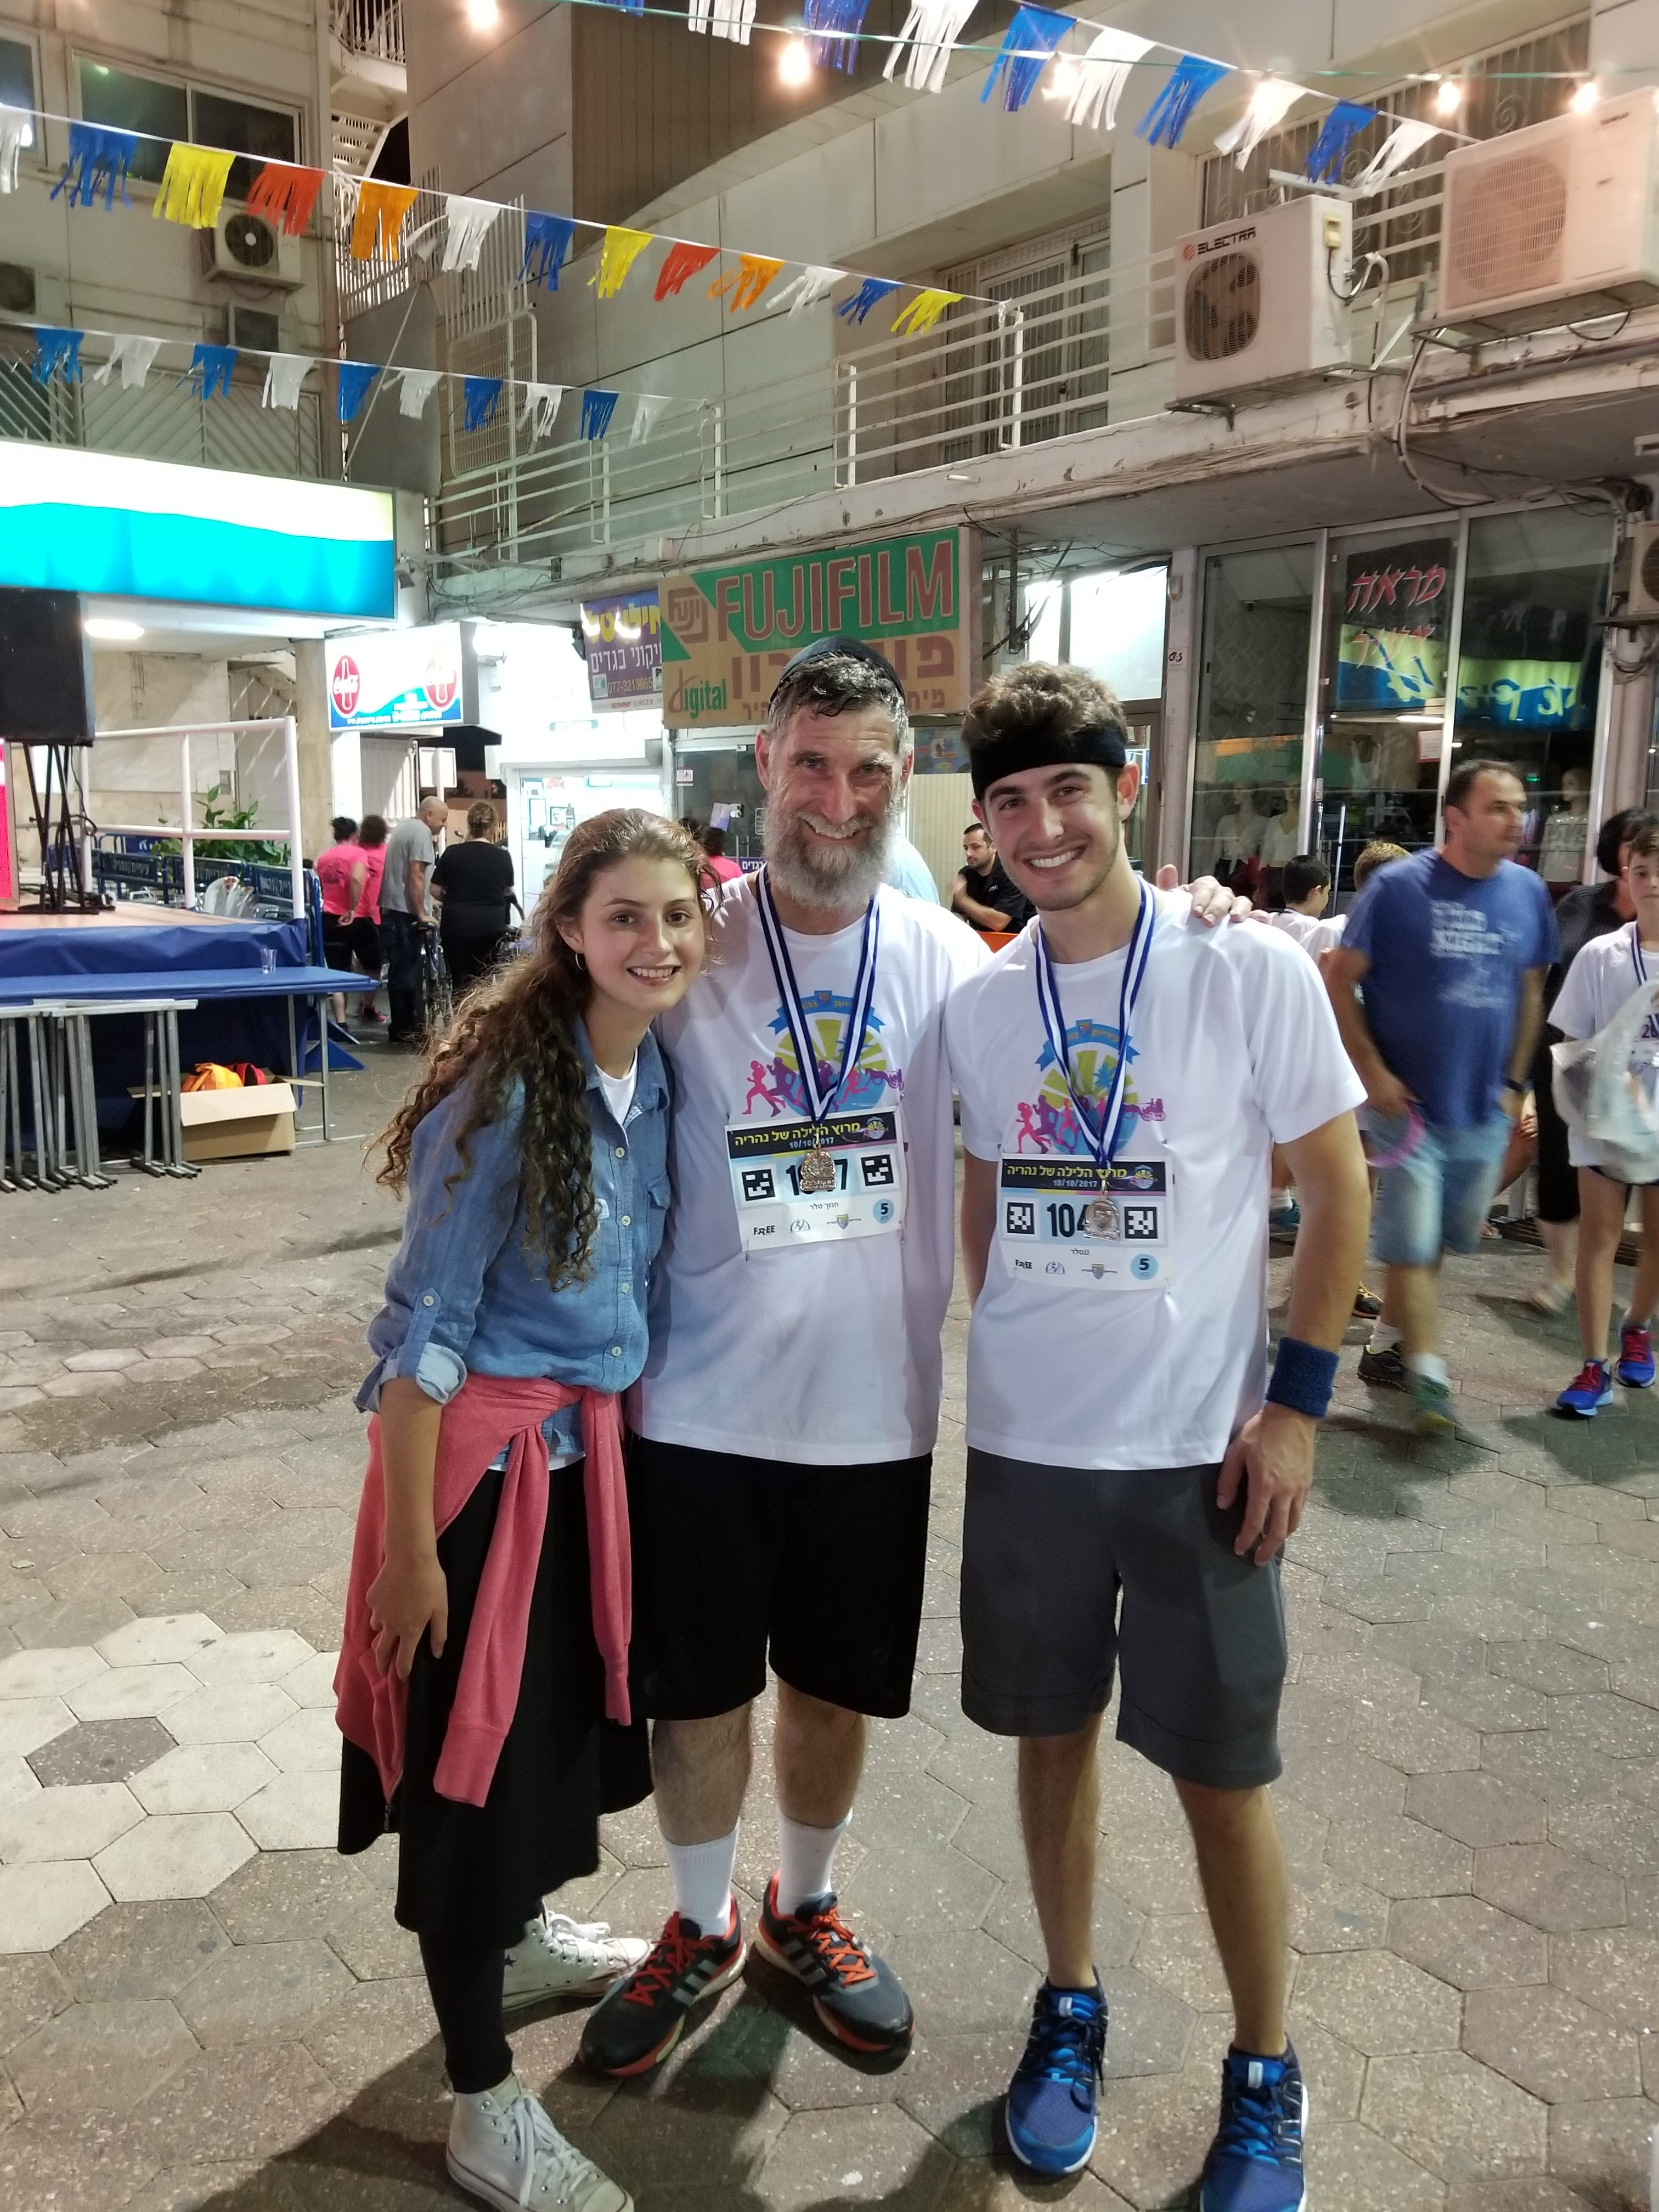 Hanoch Teller and his family